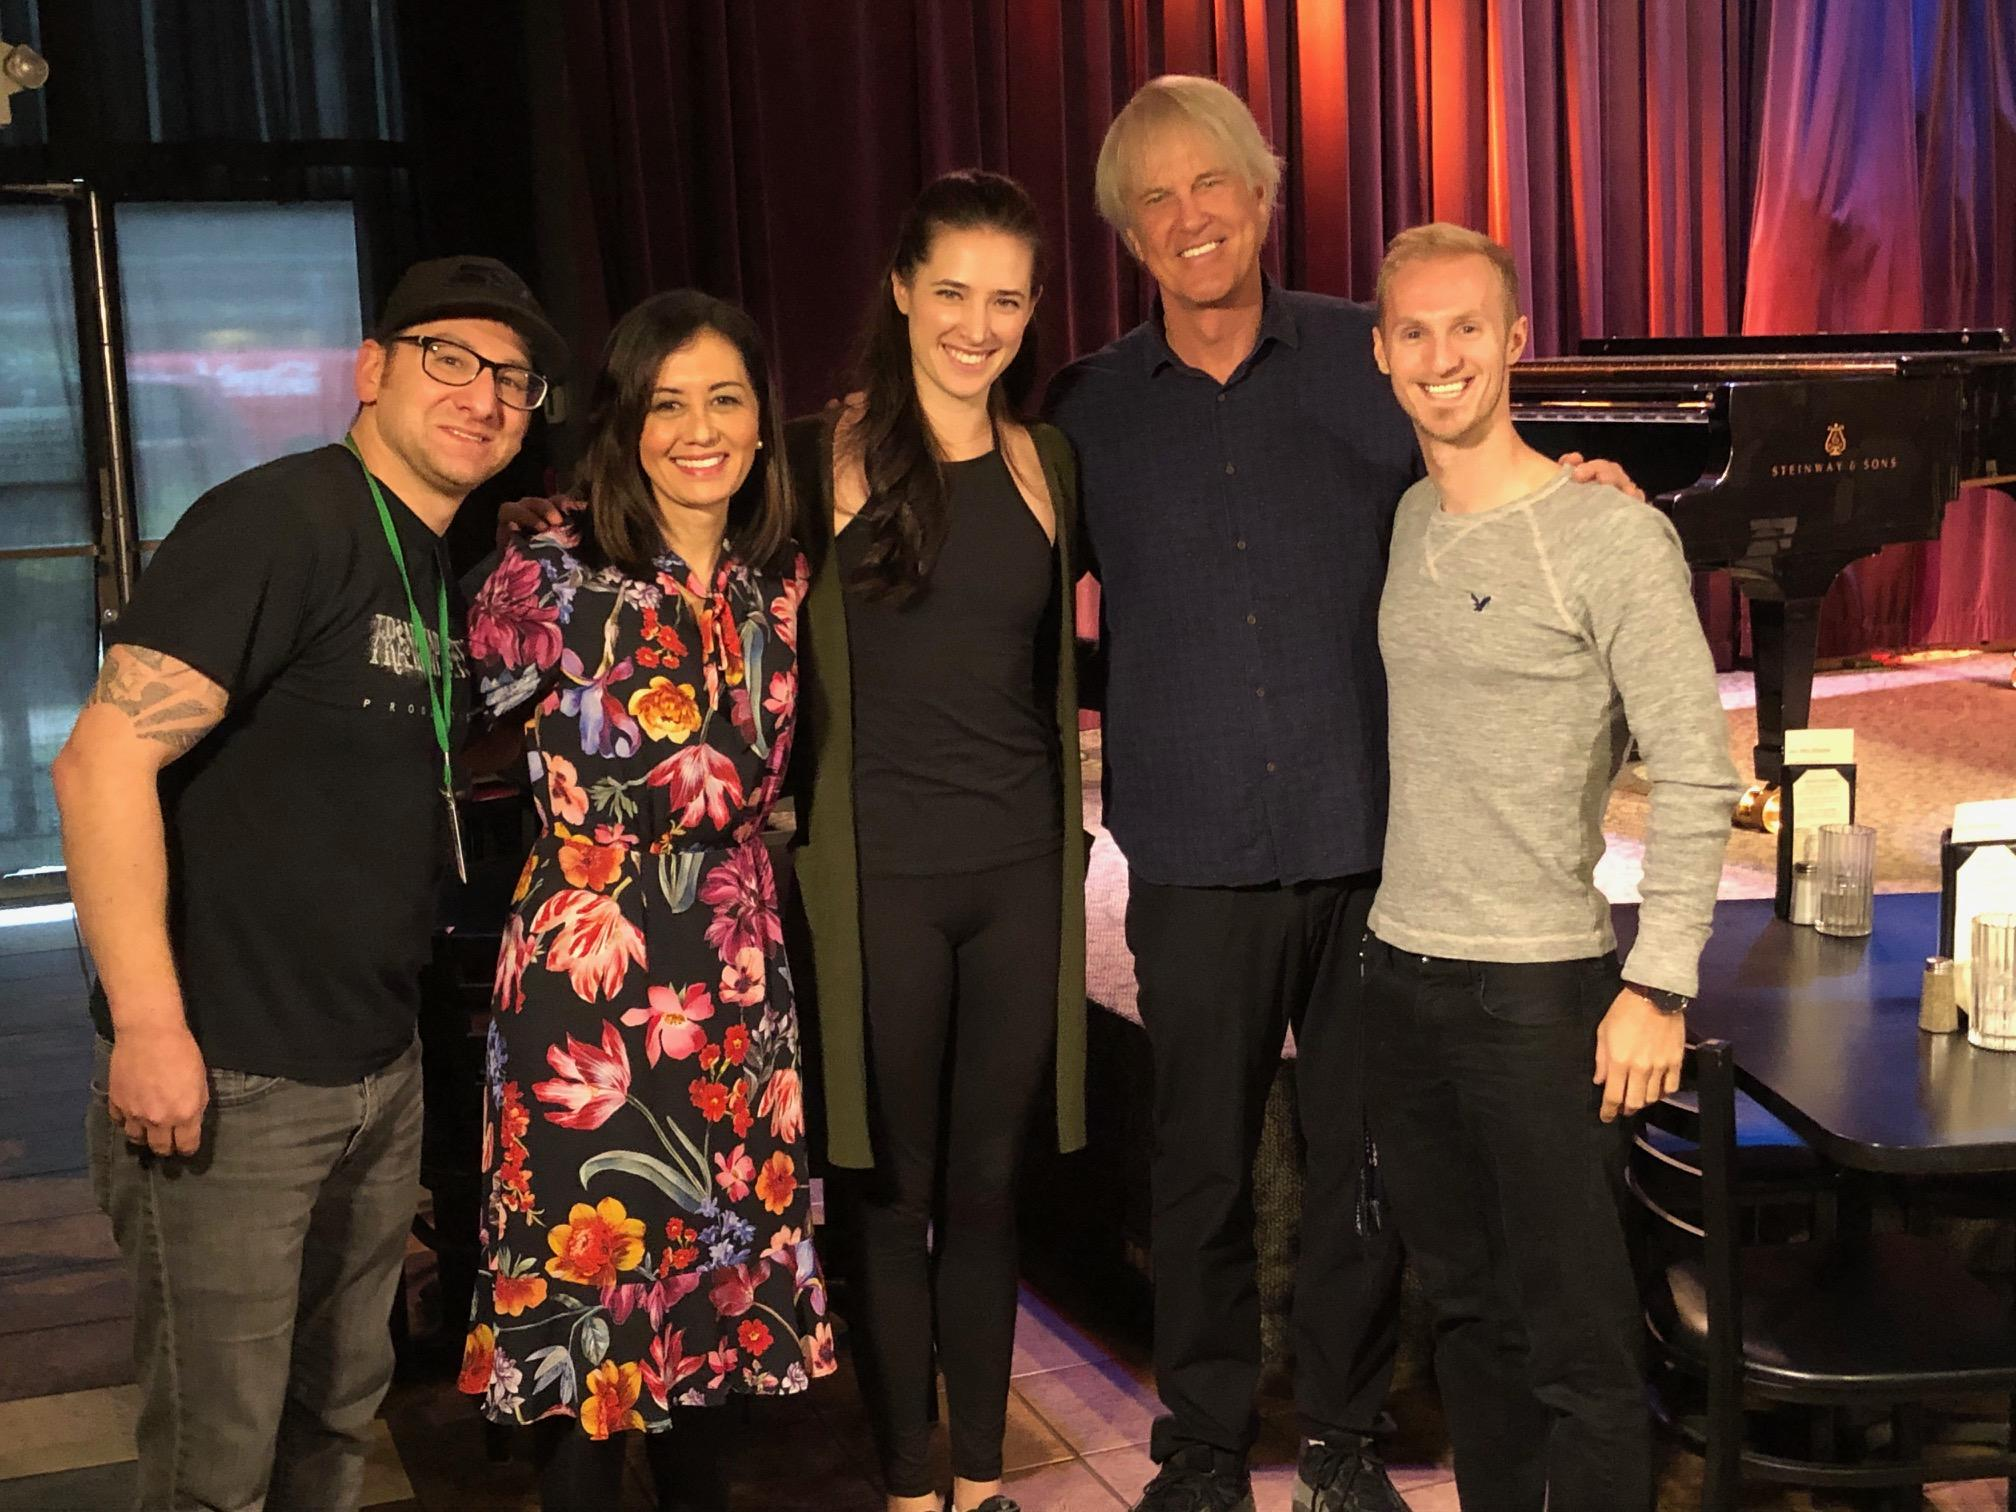 Seattle Refined's Ty Huffer, Malia Karlinsky and Kohlton Steinke with John Tesh and Prima Tesh. (Photo: Seattle Refined)